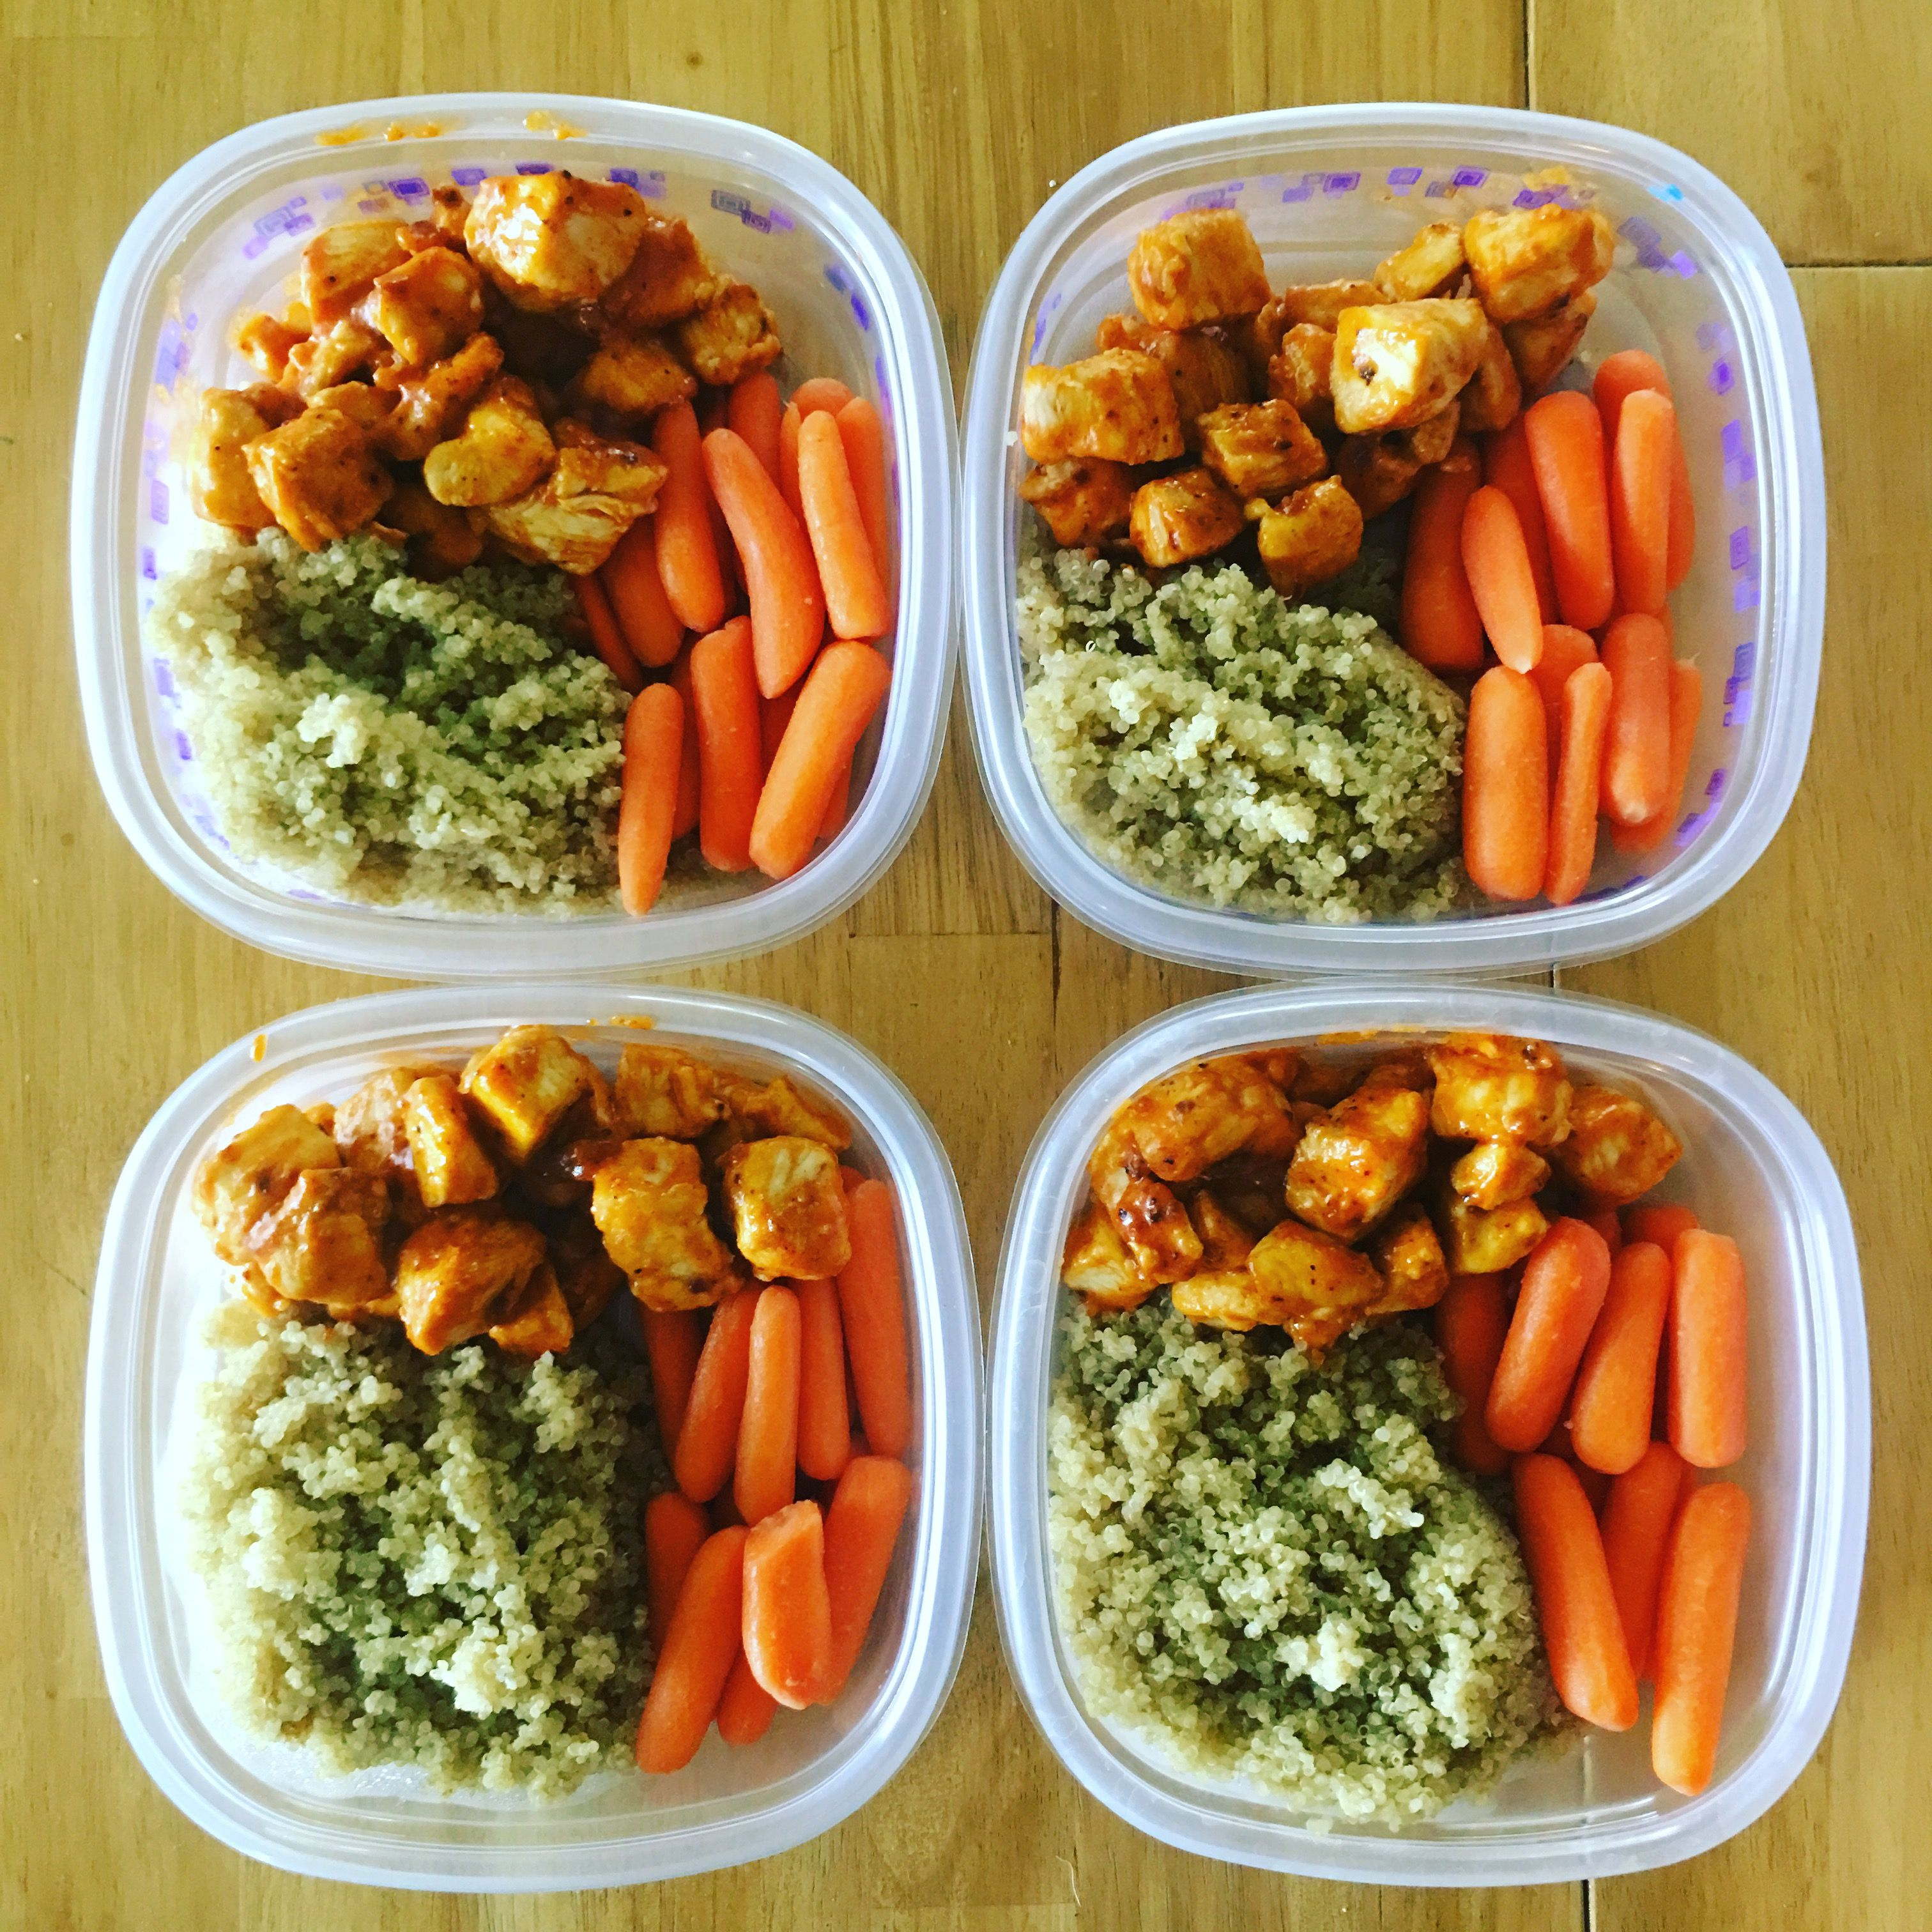 Buffalo Chicken is on the menu for this week! Details are in the comments! #mealprepping #OneSimpleChange #mealprep #healthy #mealplanning #healthyliving #food #weightloss #sunday